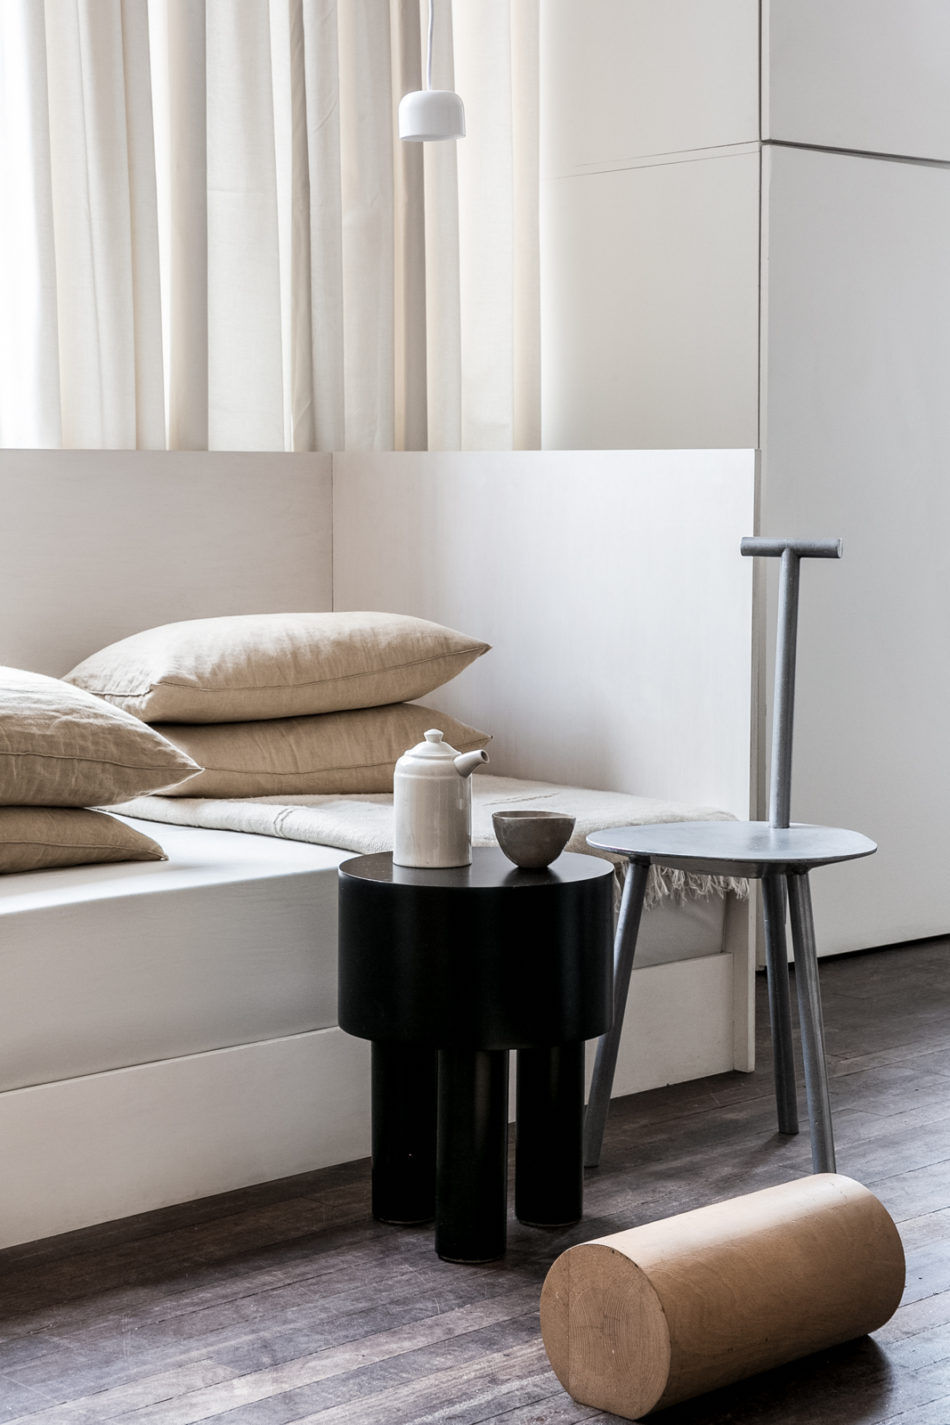 Current Obsessions: The Ikea Apartment